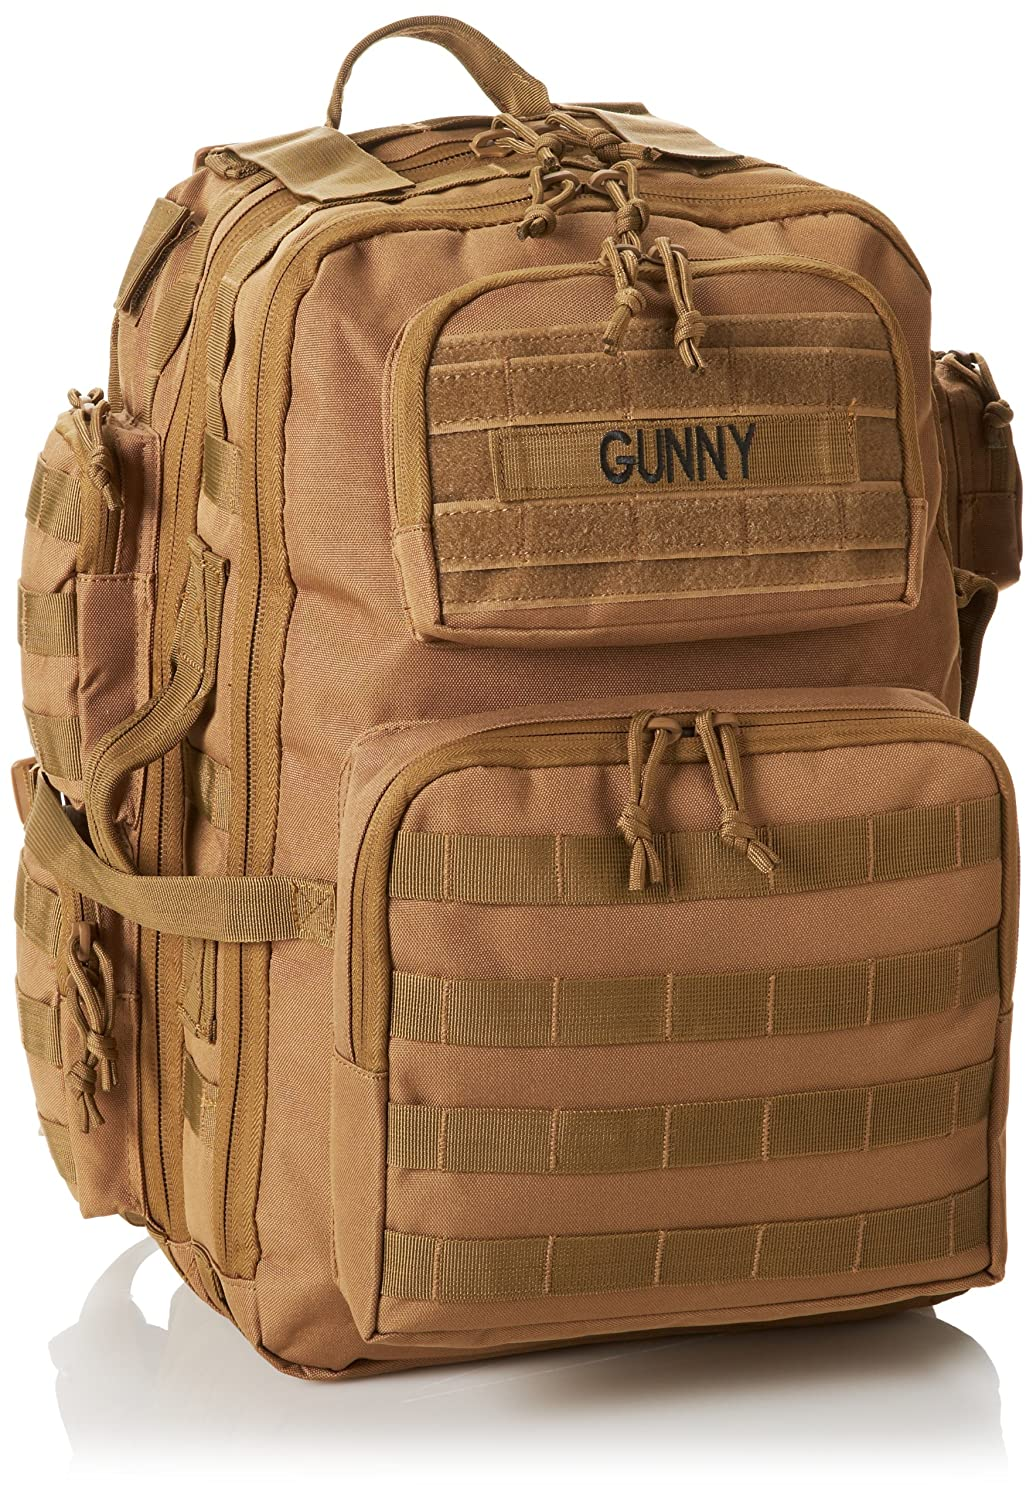 Tru-Spec Tour of Duty Gunny Rucksack